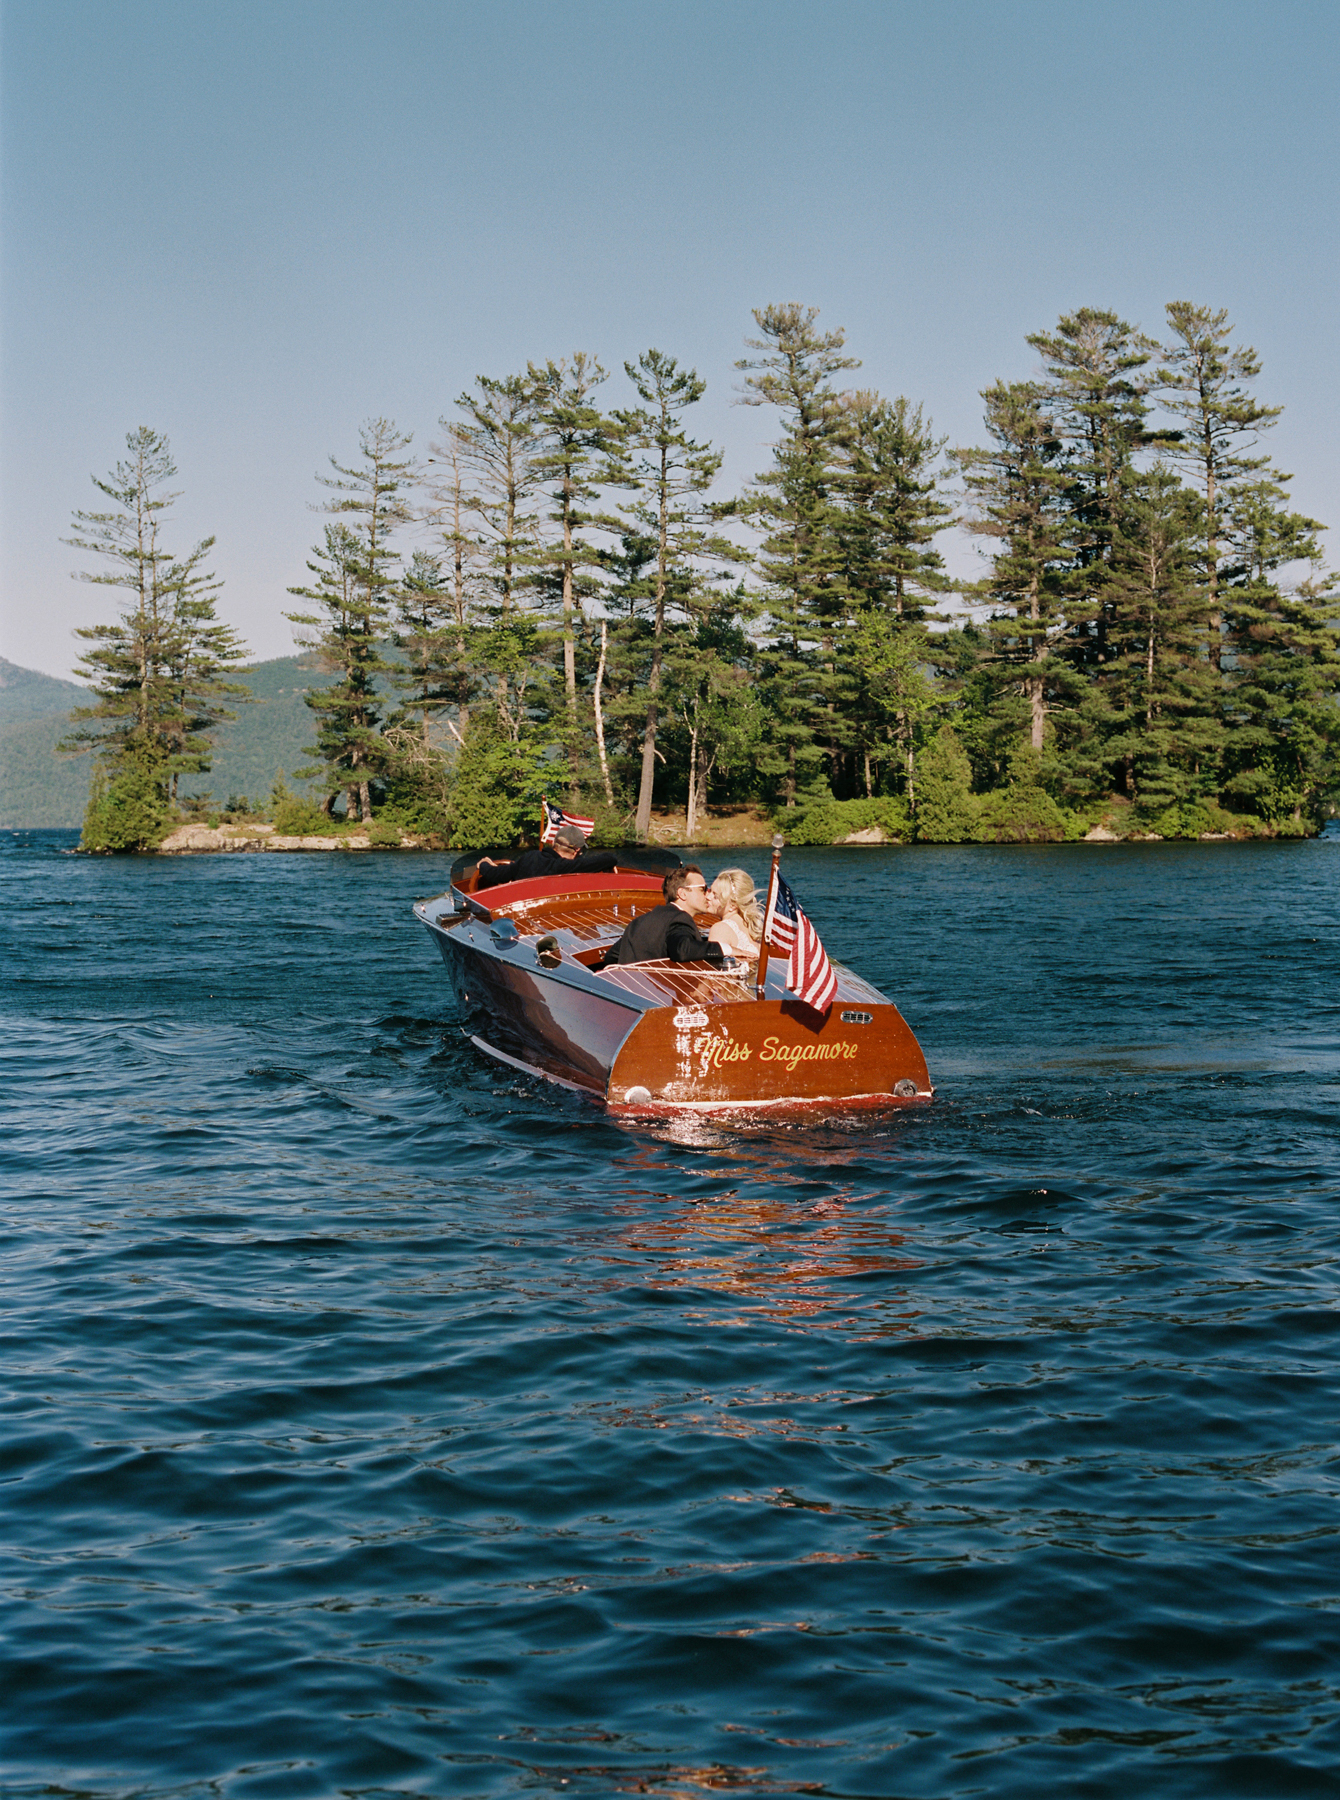 Classic mahogany boats are a summer staple on Lake George. An intimate ride on a vintage Hacker-Craft proved to be one of our favorite moments. There was something so magical about gliding across the crystal clear lake after saying I do.